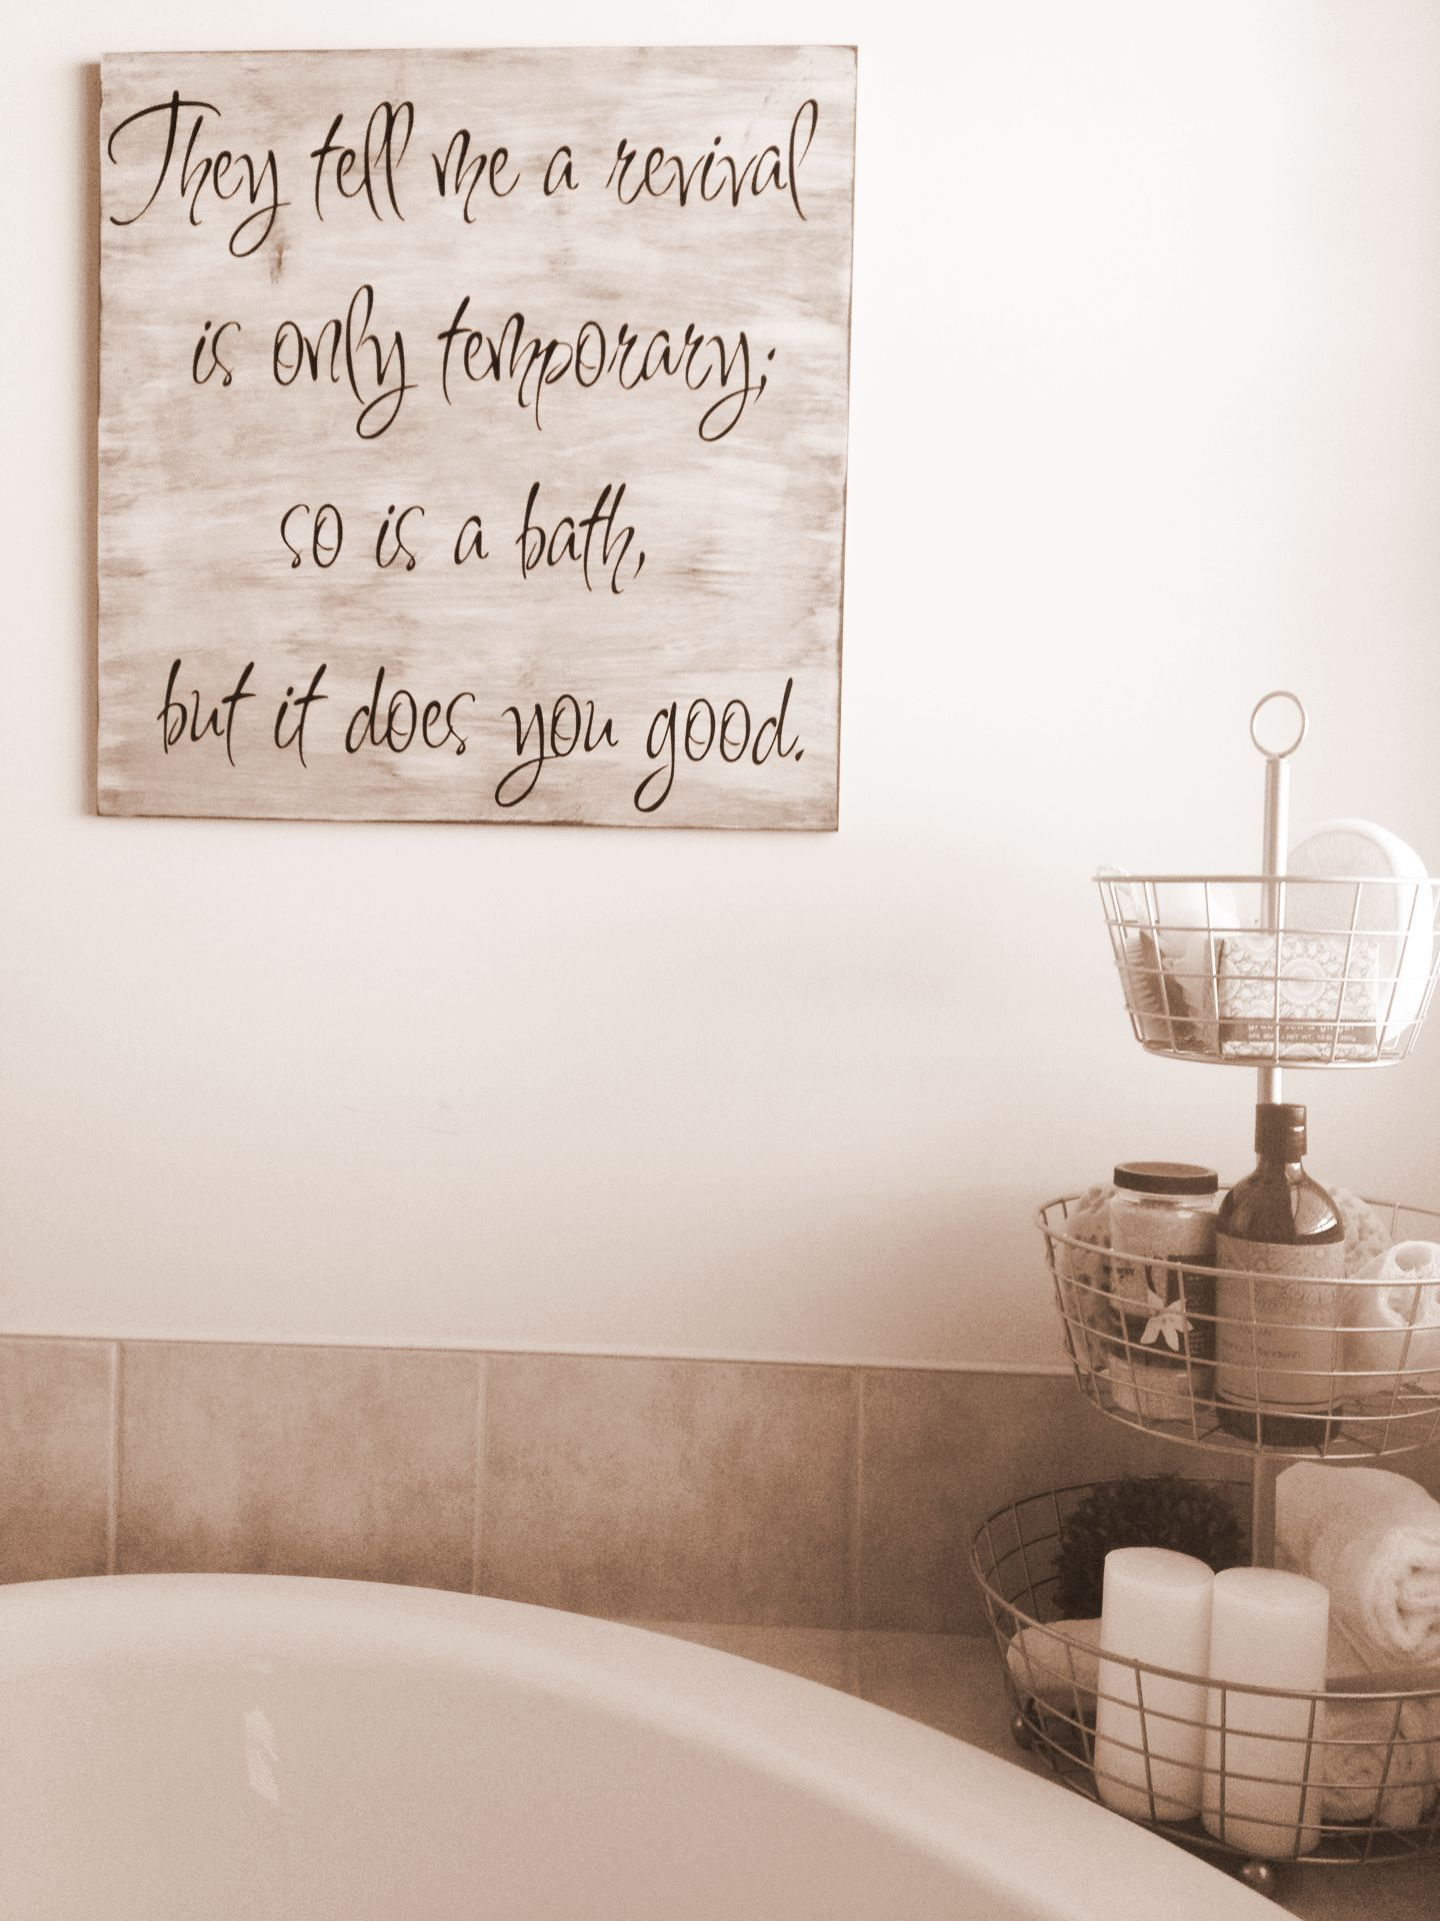 Bathroom wall art decor ideas click on the image for additional